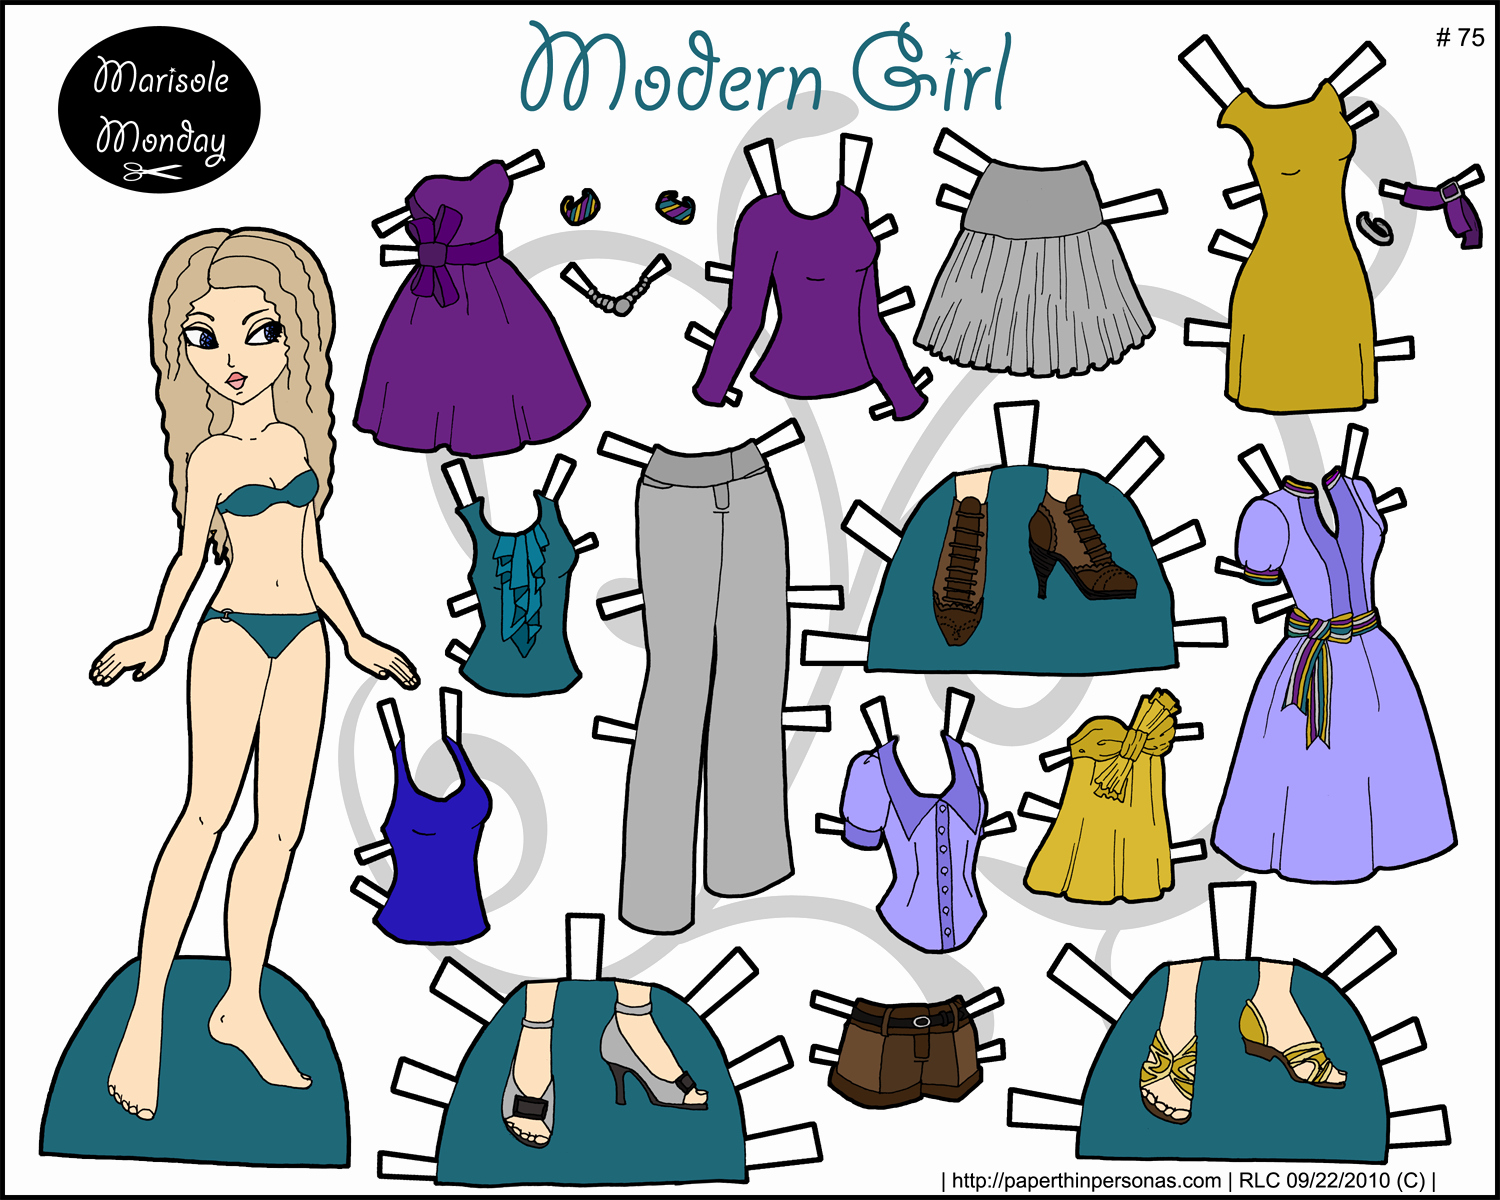 Paper Doll Cut Outs Lovely Marisole Archives • Page 12 Of 15 • Paper Thin Personas